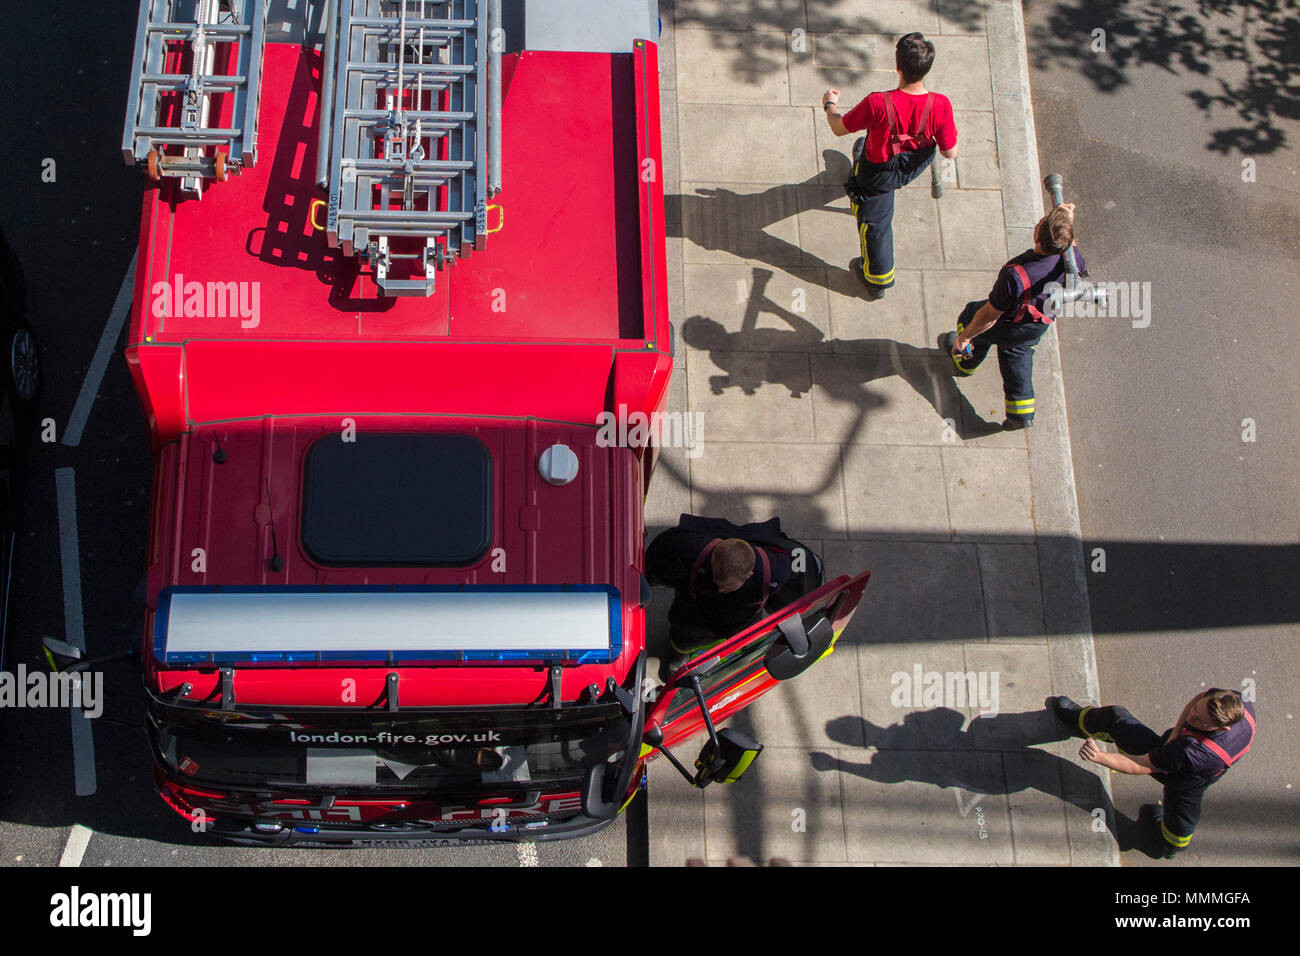 Looking down onto a fire engine attending an emergency - Stock Image